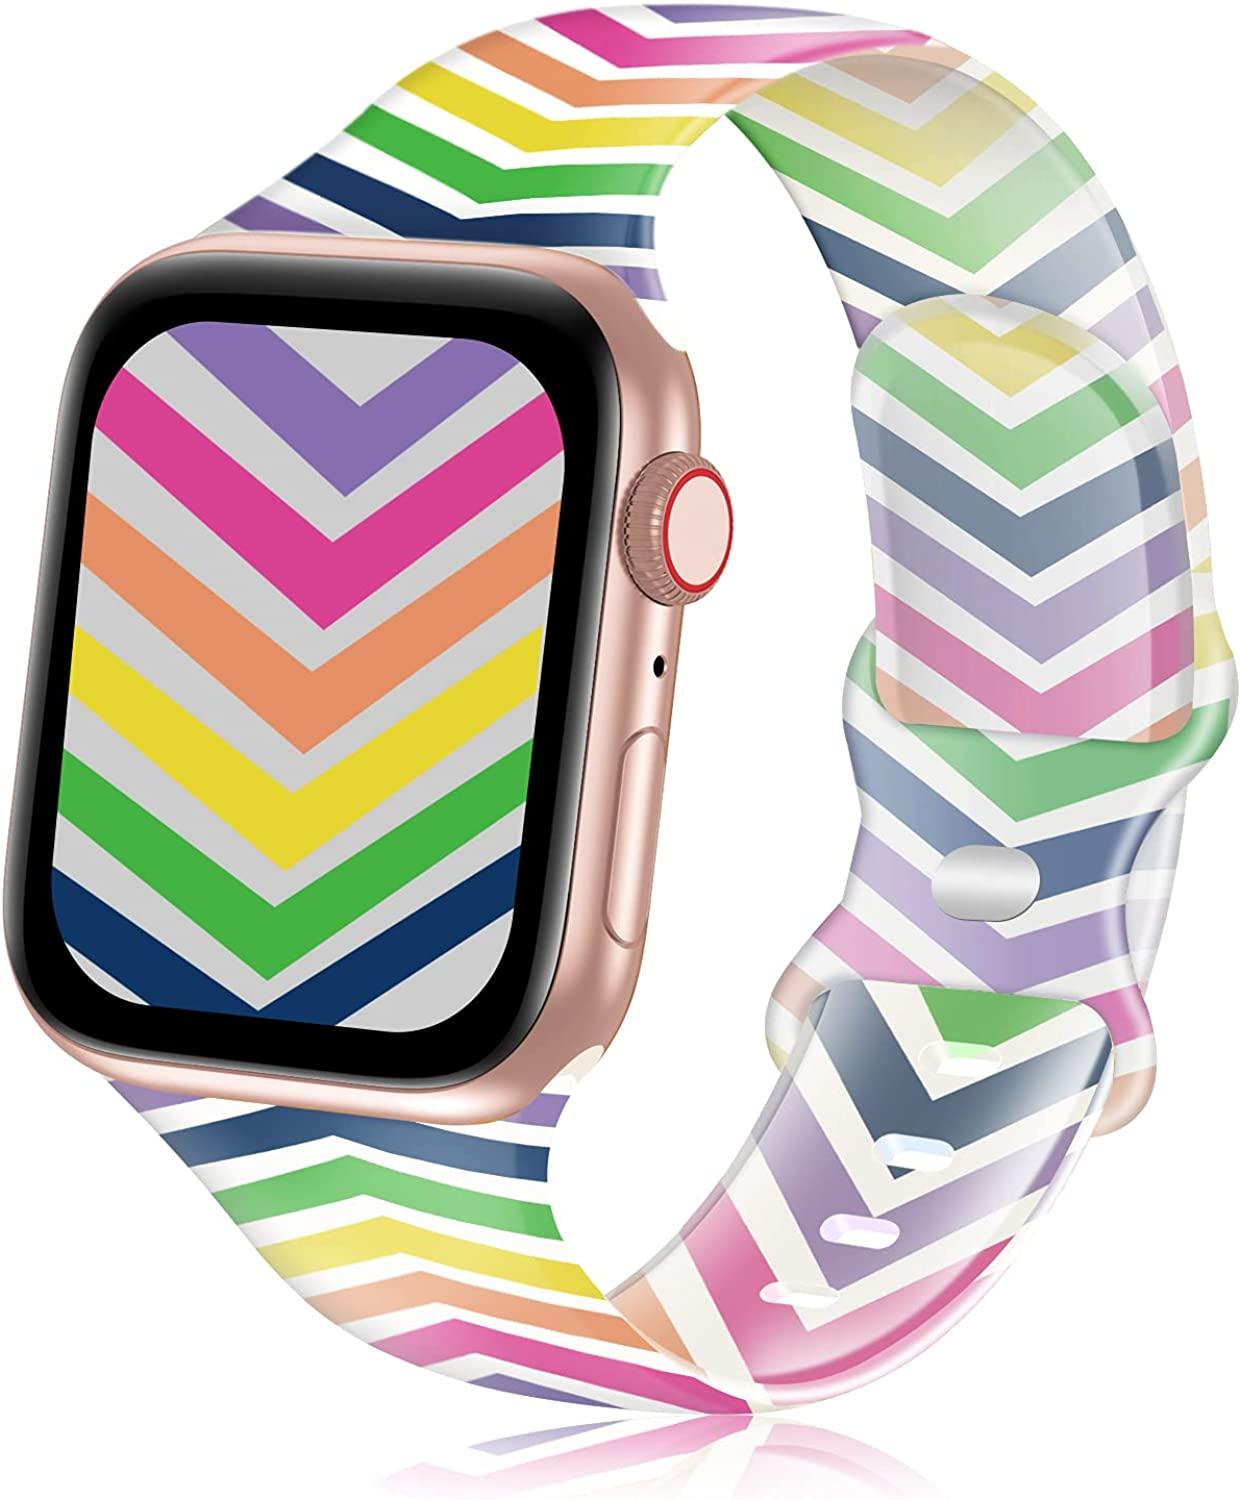 YAXIN Sport Band Compatible with Apple Watch Band 38mm 40mm 42mm 44mm 41mm 45mm Women,Silicone Transparent Floral Printed Fadeless Pattern Replacement Strap Band for iWatch Series 7 6 3 4 5 2 1 SE